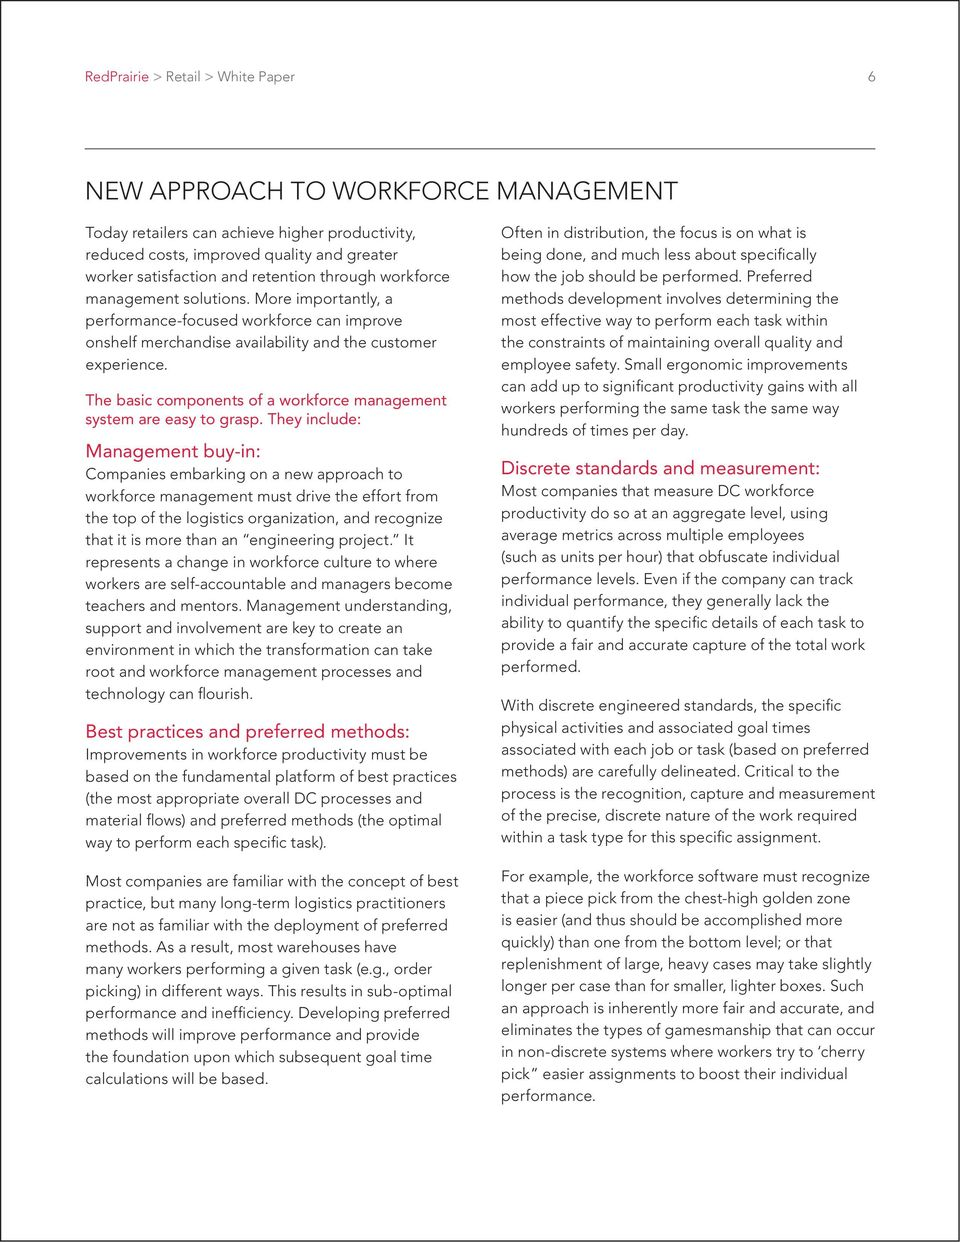 The basic components of a workforce management system are easy to grasp.